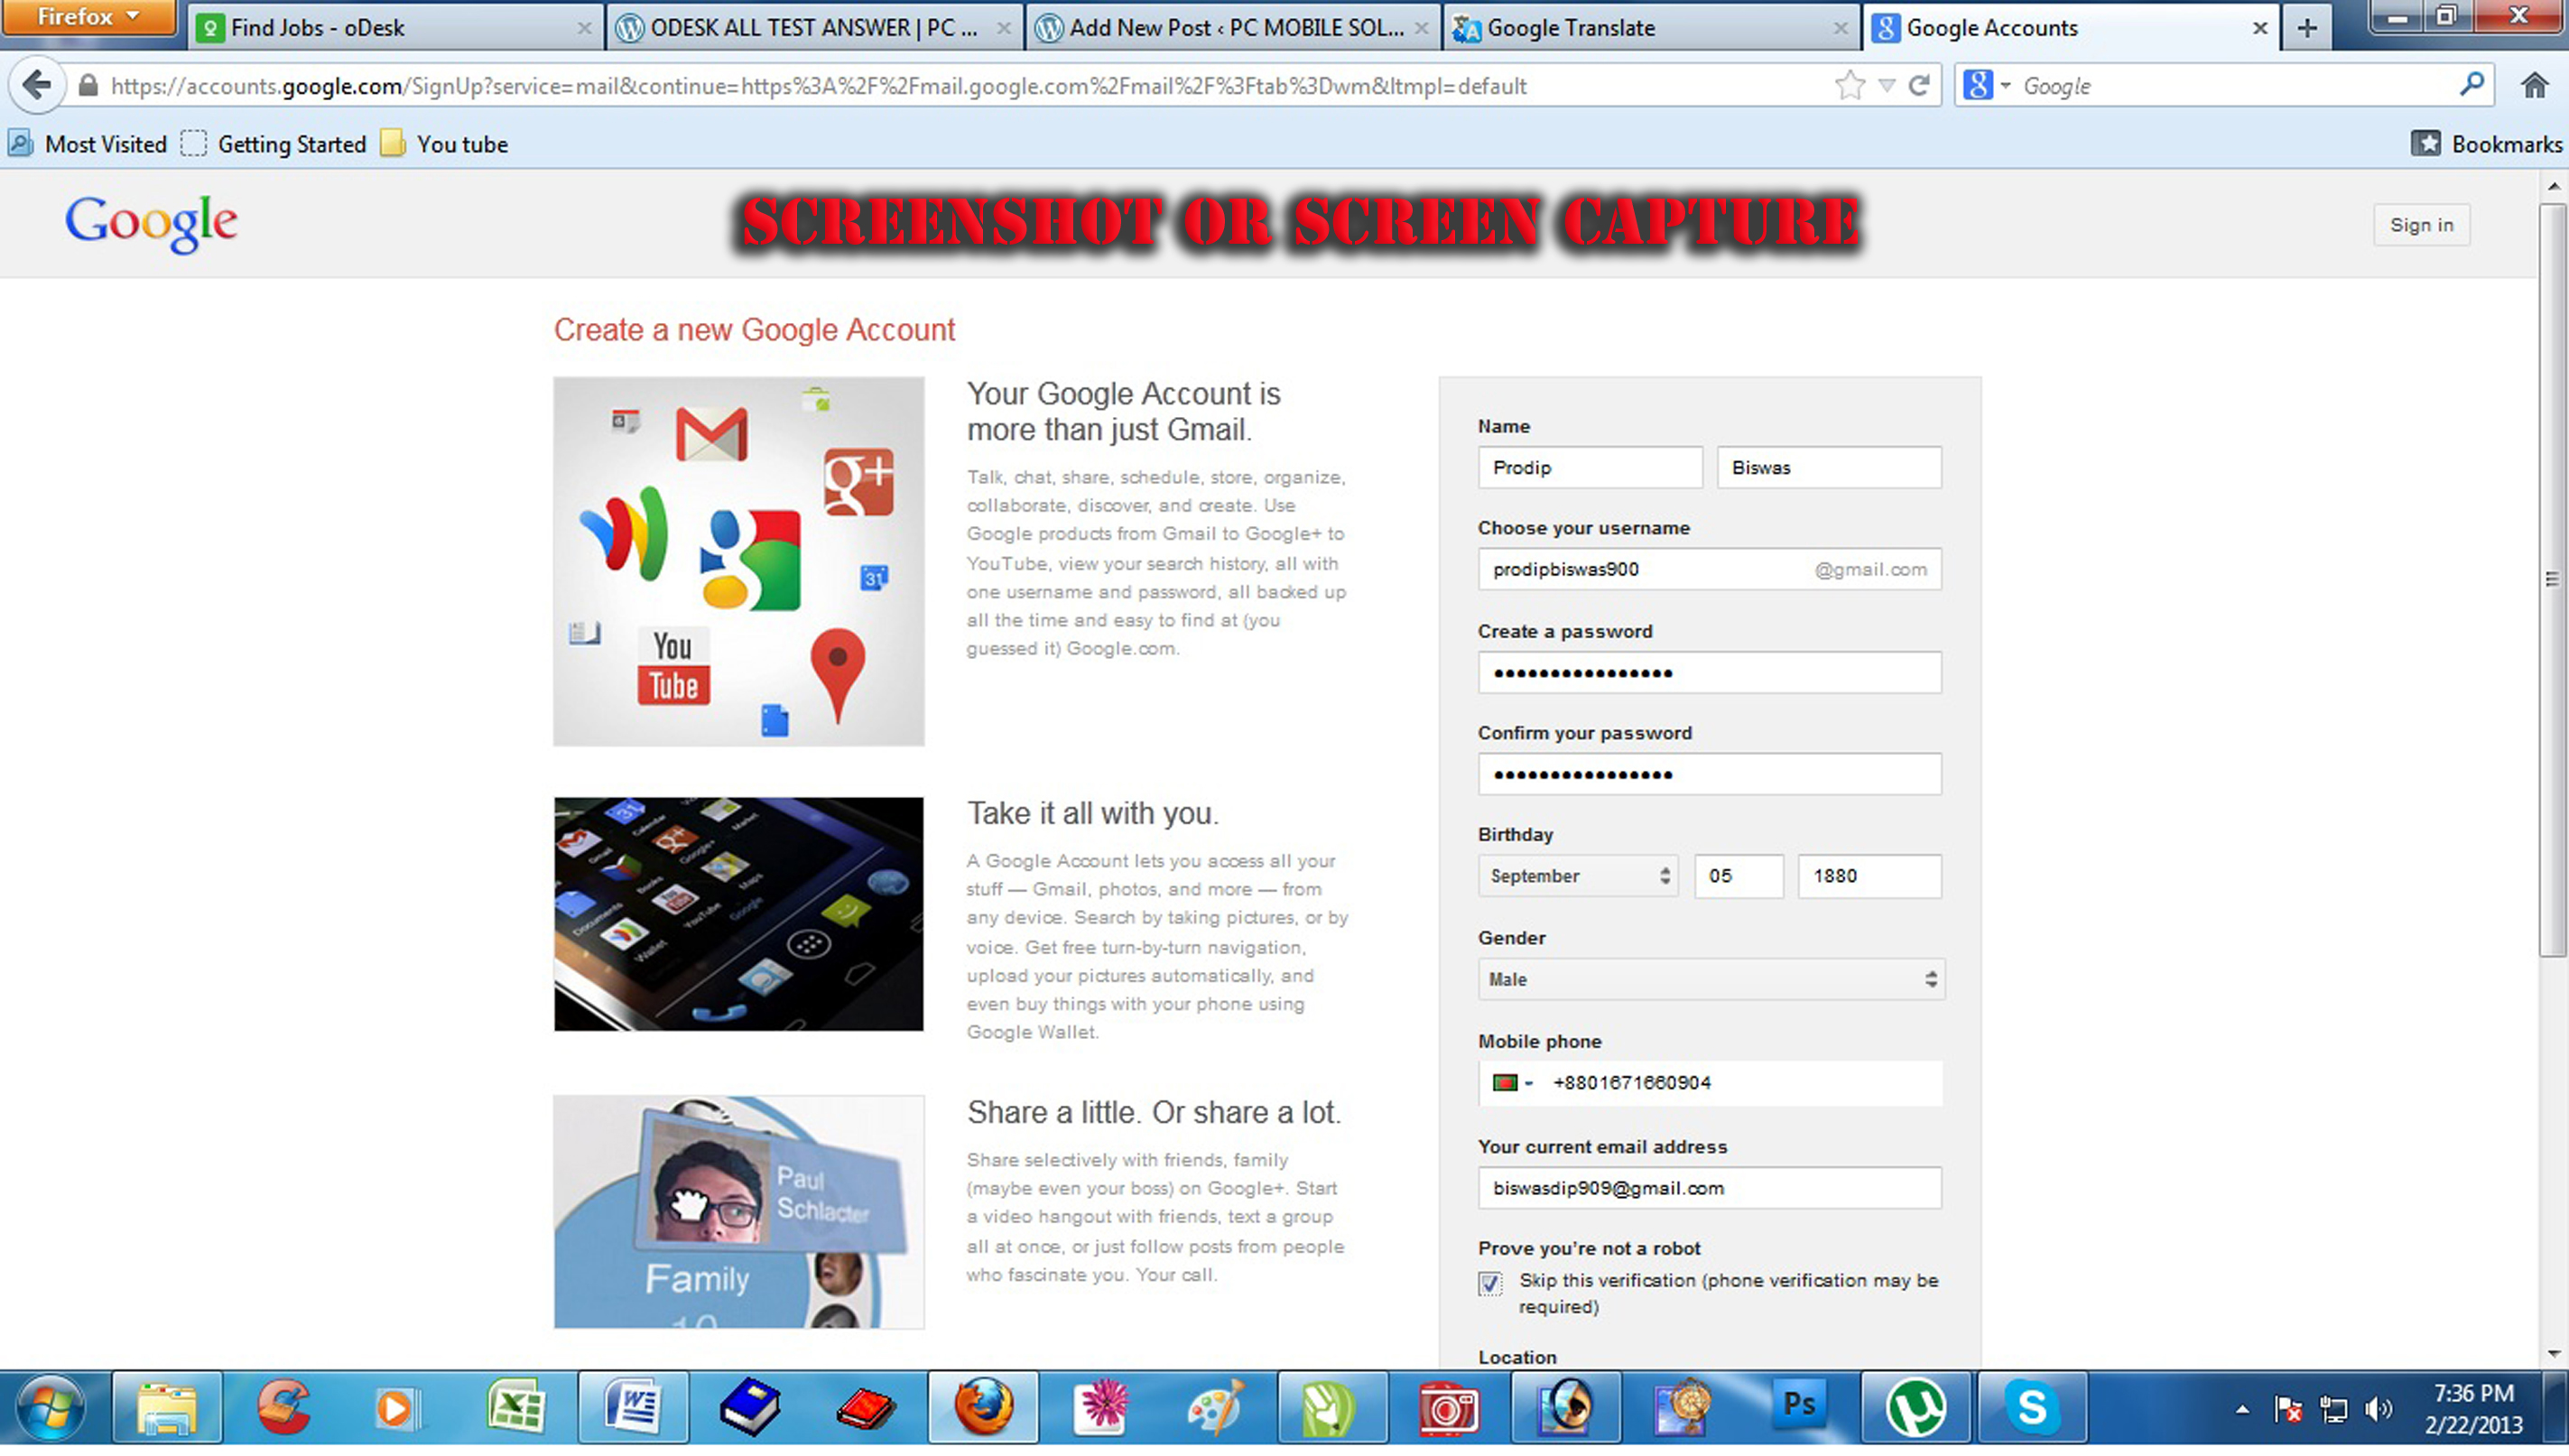 Computer Screen Capture Pc Mobile Solution